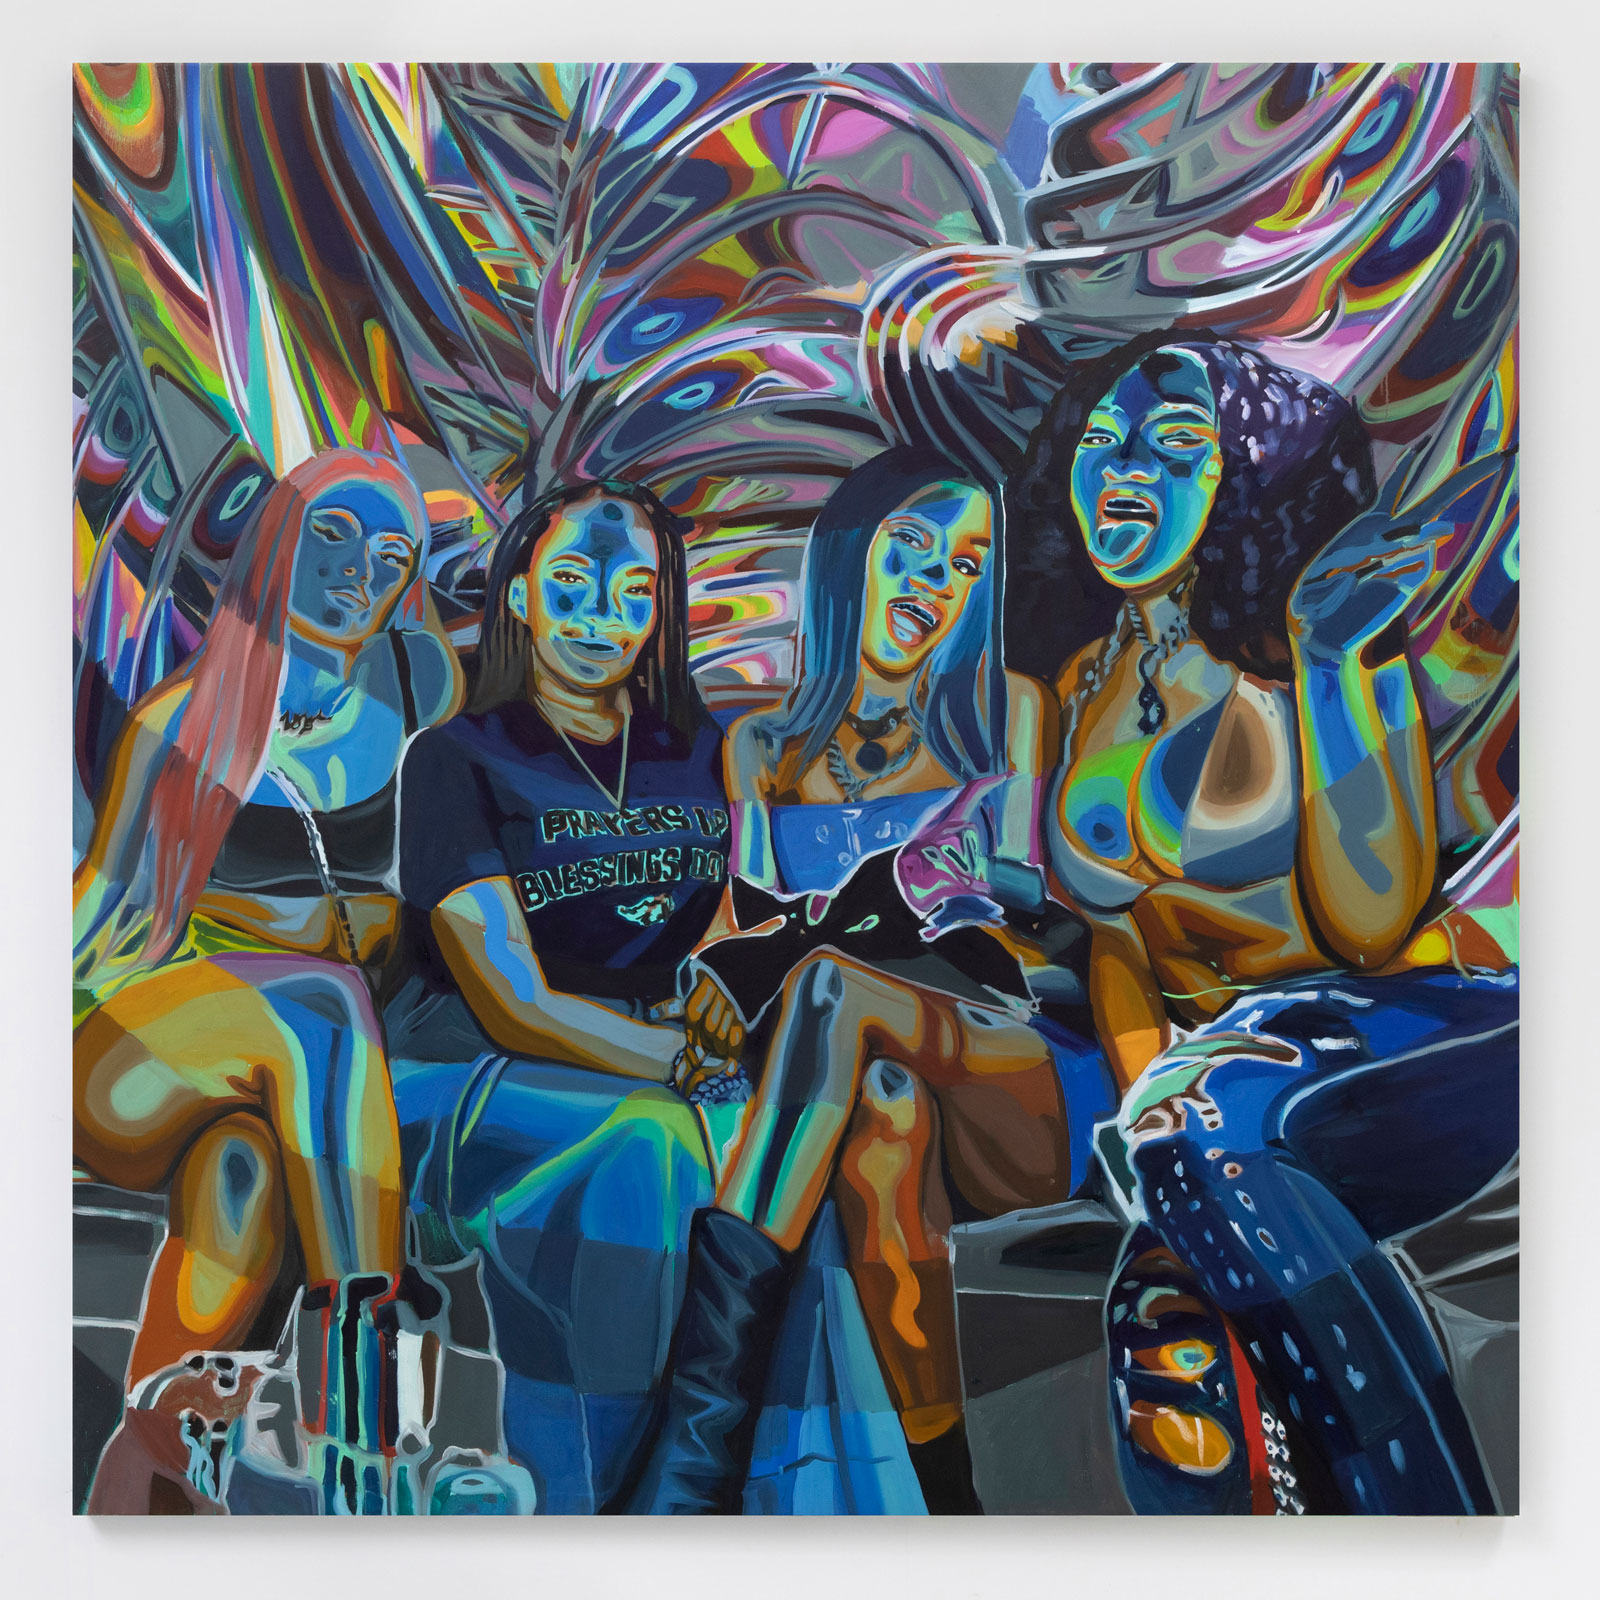 Four black women rendered in rainbow colors sitting together